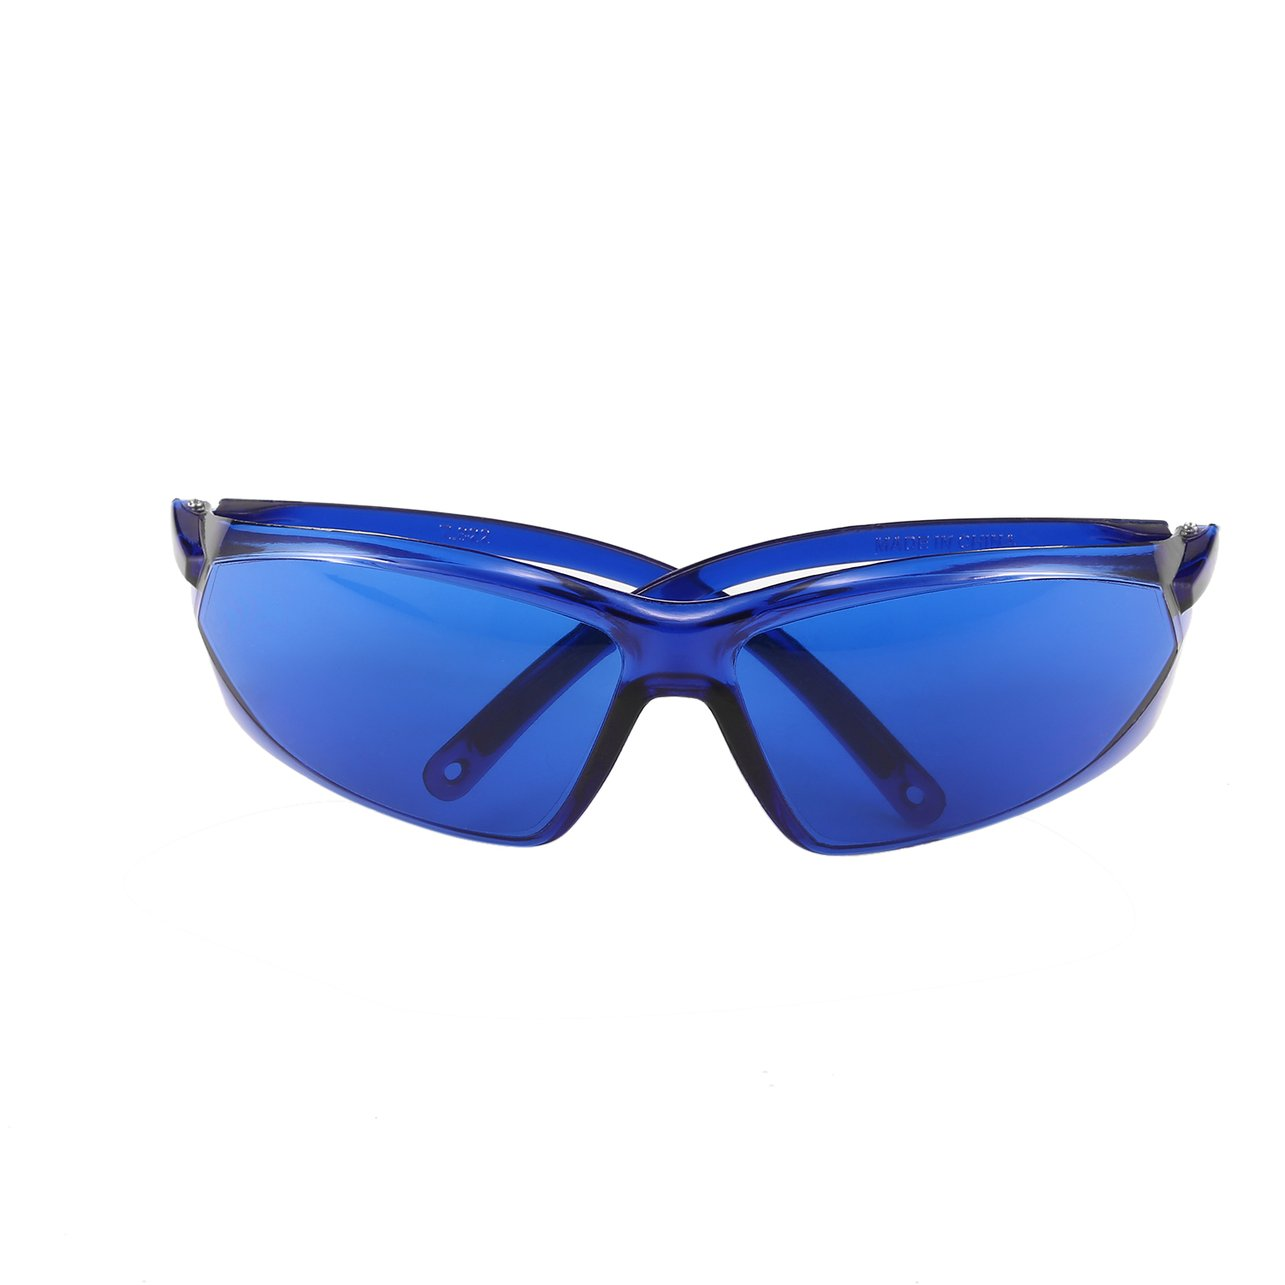 E Light/IPL/Photon Beauty Instrument Safety Protective Glasses Blue Goggles